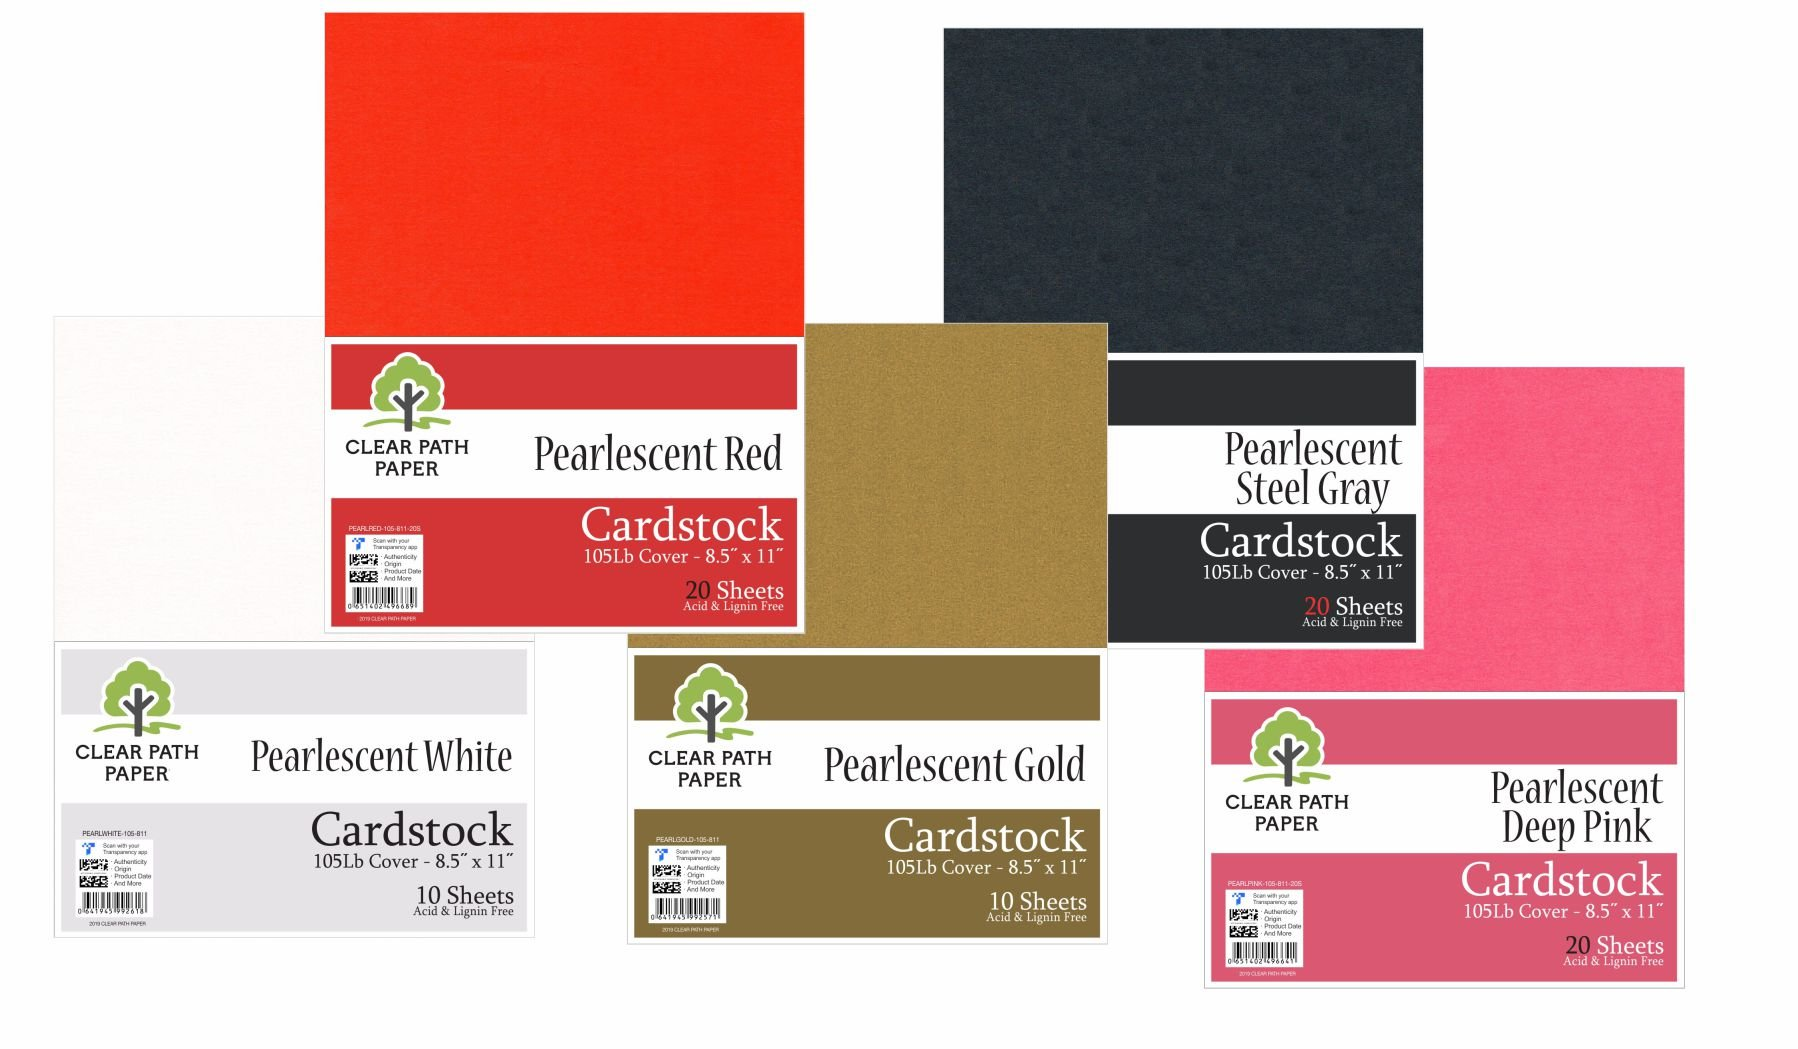 Image of an Amazon bundle of Clear Path Paper cardstock in Pearlescent Red, Pearlescent White, Pearlescent Gold, Pearlescent Steel Gray, and Pearlescent Deep Pink